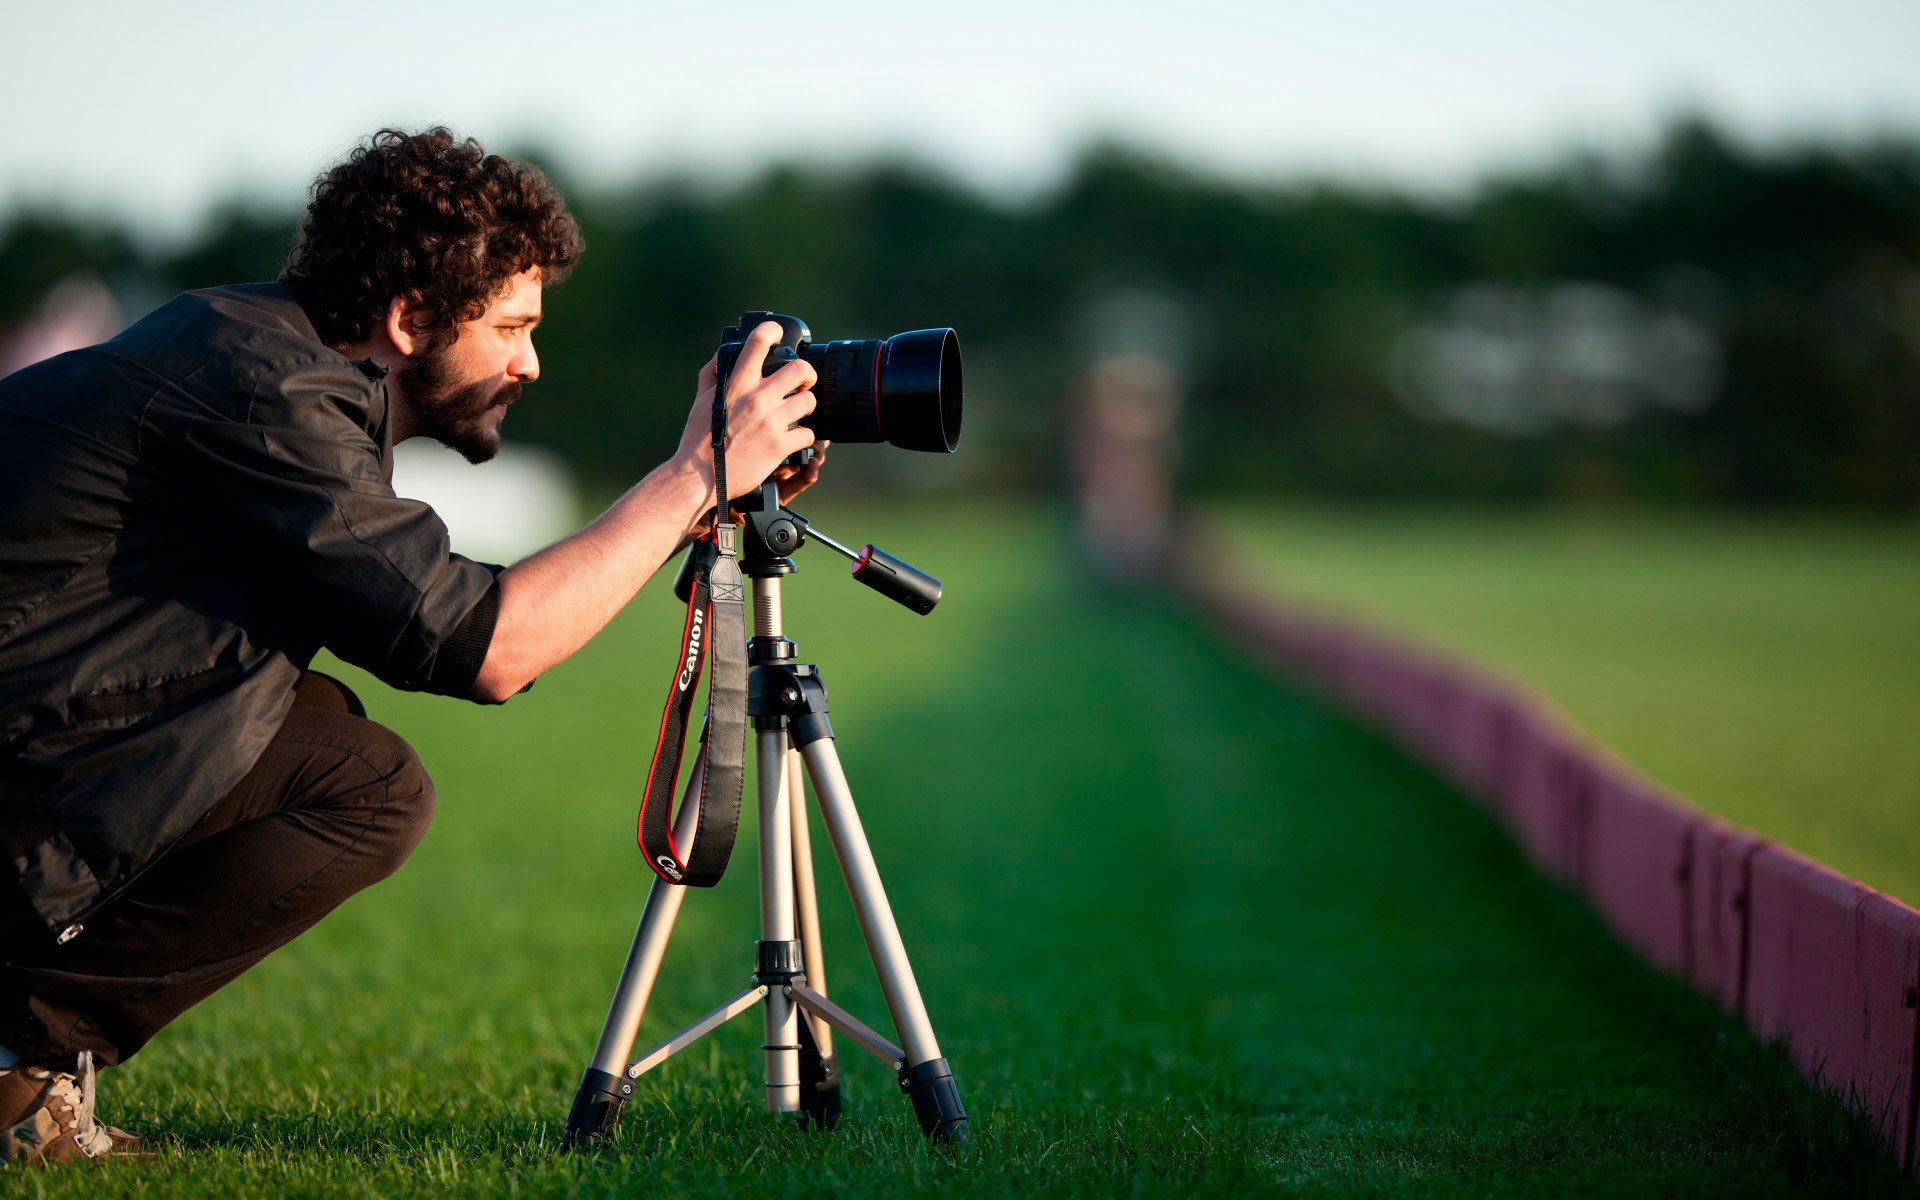 photography is an art The development of a photograph was an artform, as it required much precision, trial and error, and the desire to recreate reality in a single snapshot which begs the question: what differentiates fine art photography from photos of your trip abroad let's find out.